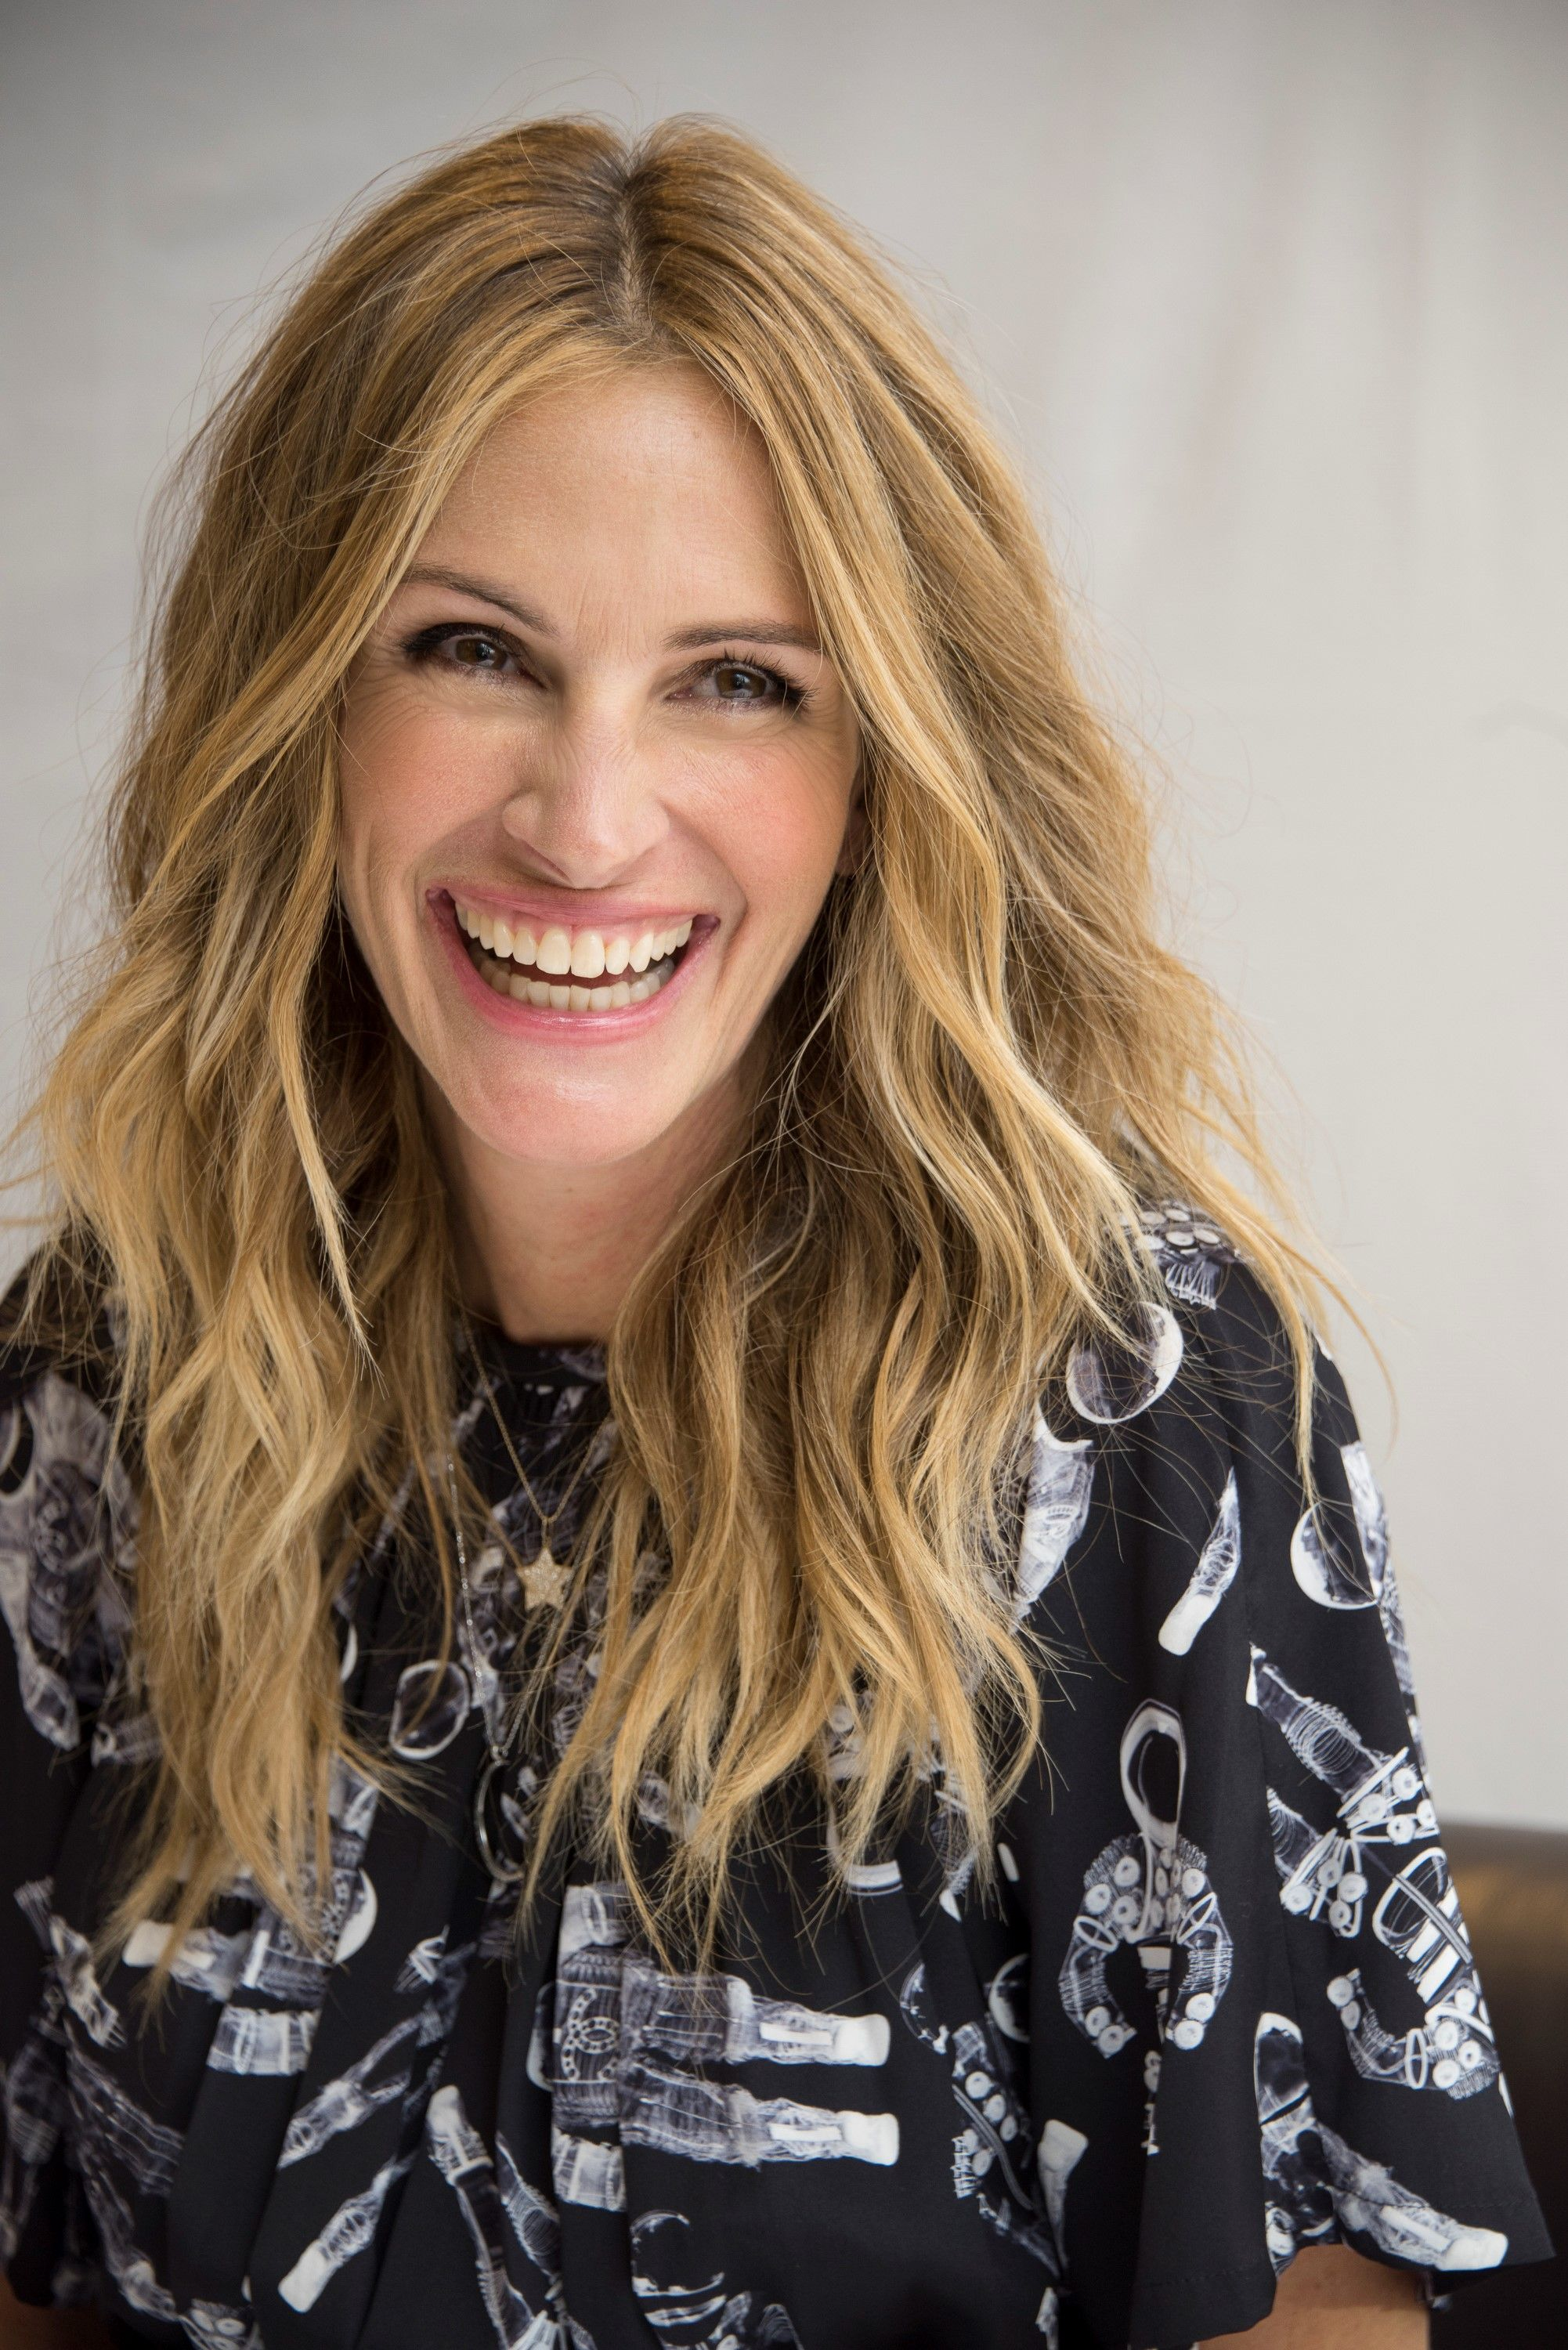 Julia Roberts Cut Her Hair Into A Tousled Lob Her Shortest Cut In Years